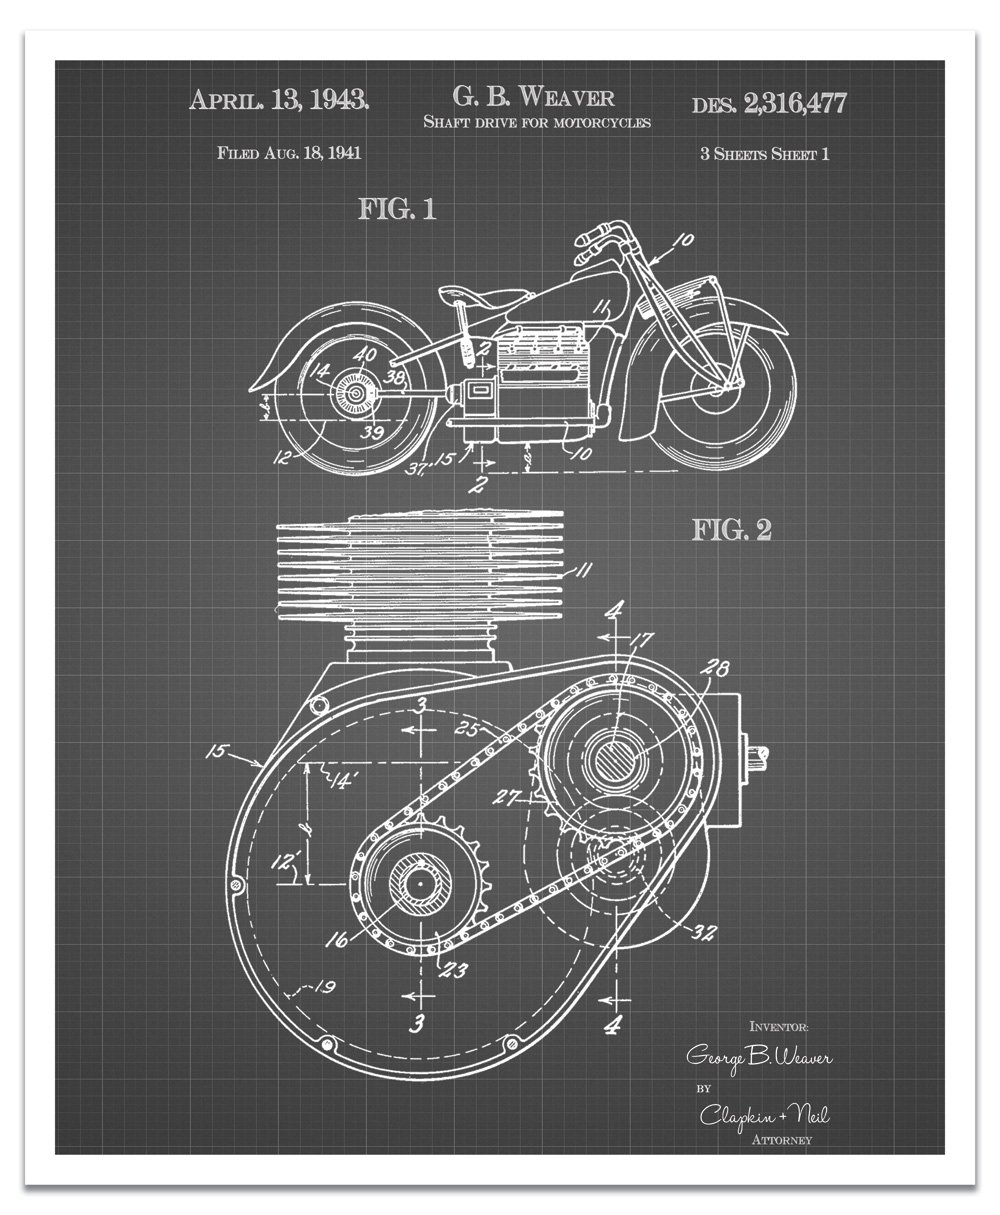 JP London POSJSG37 Steampunk Cogs Shaft Drive Motorcycle Engine Art Peel and Stick Vintage Black Grid Poster Patent Art Black//White Gridlines 24 x 19.75